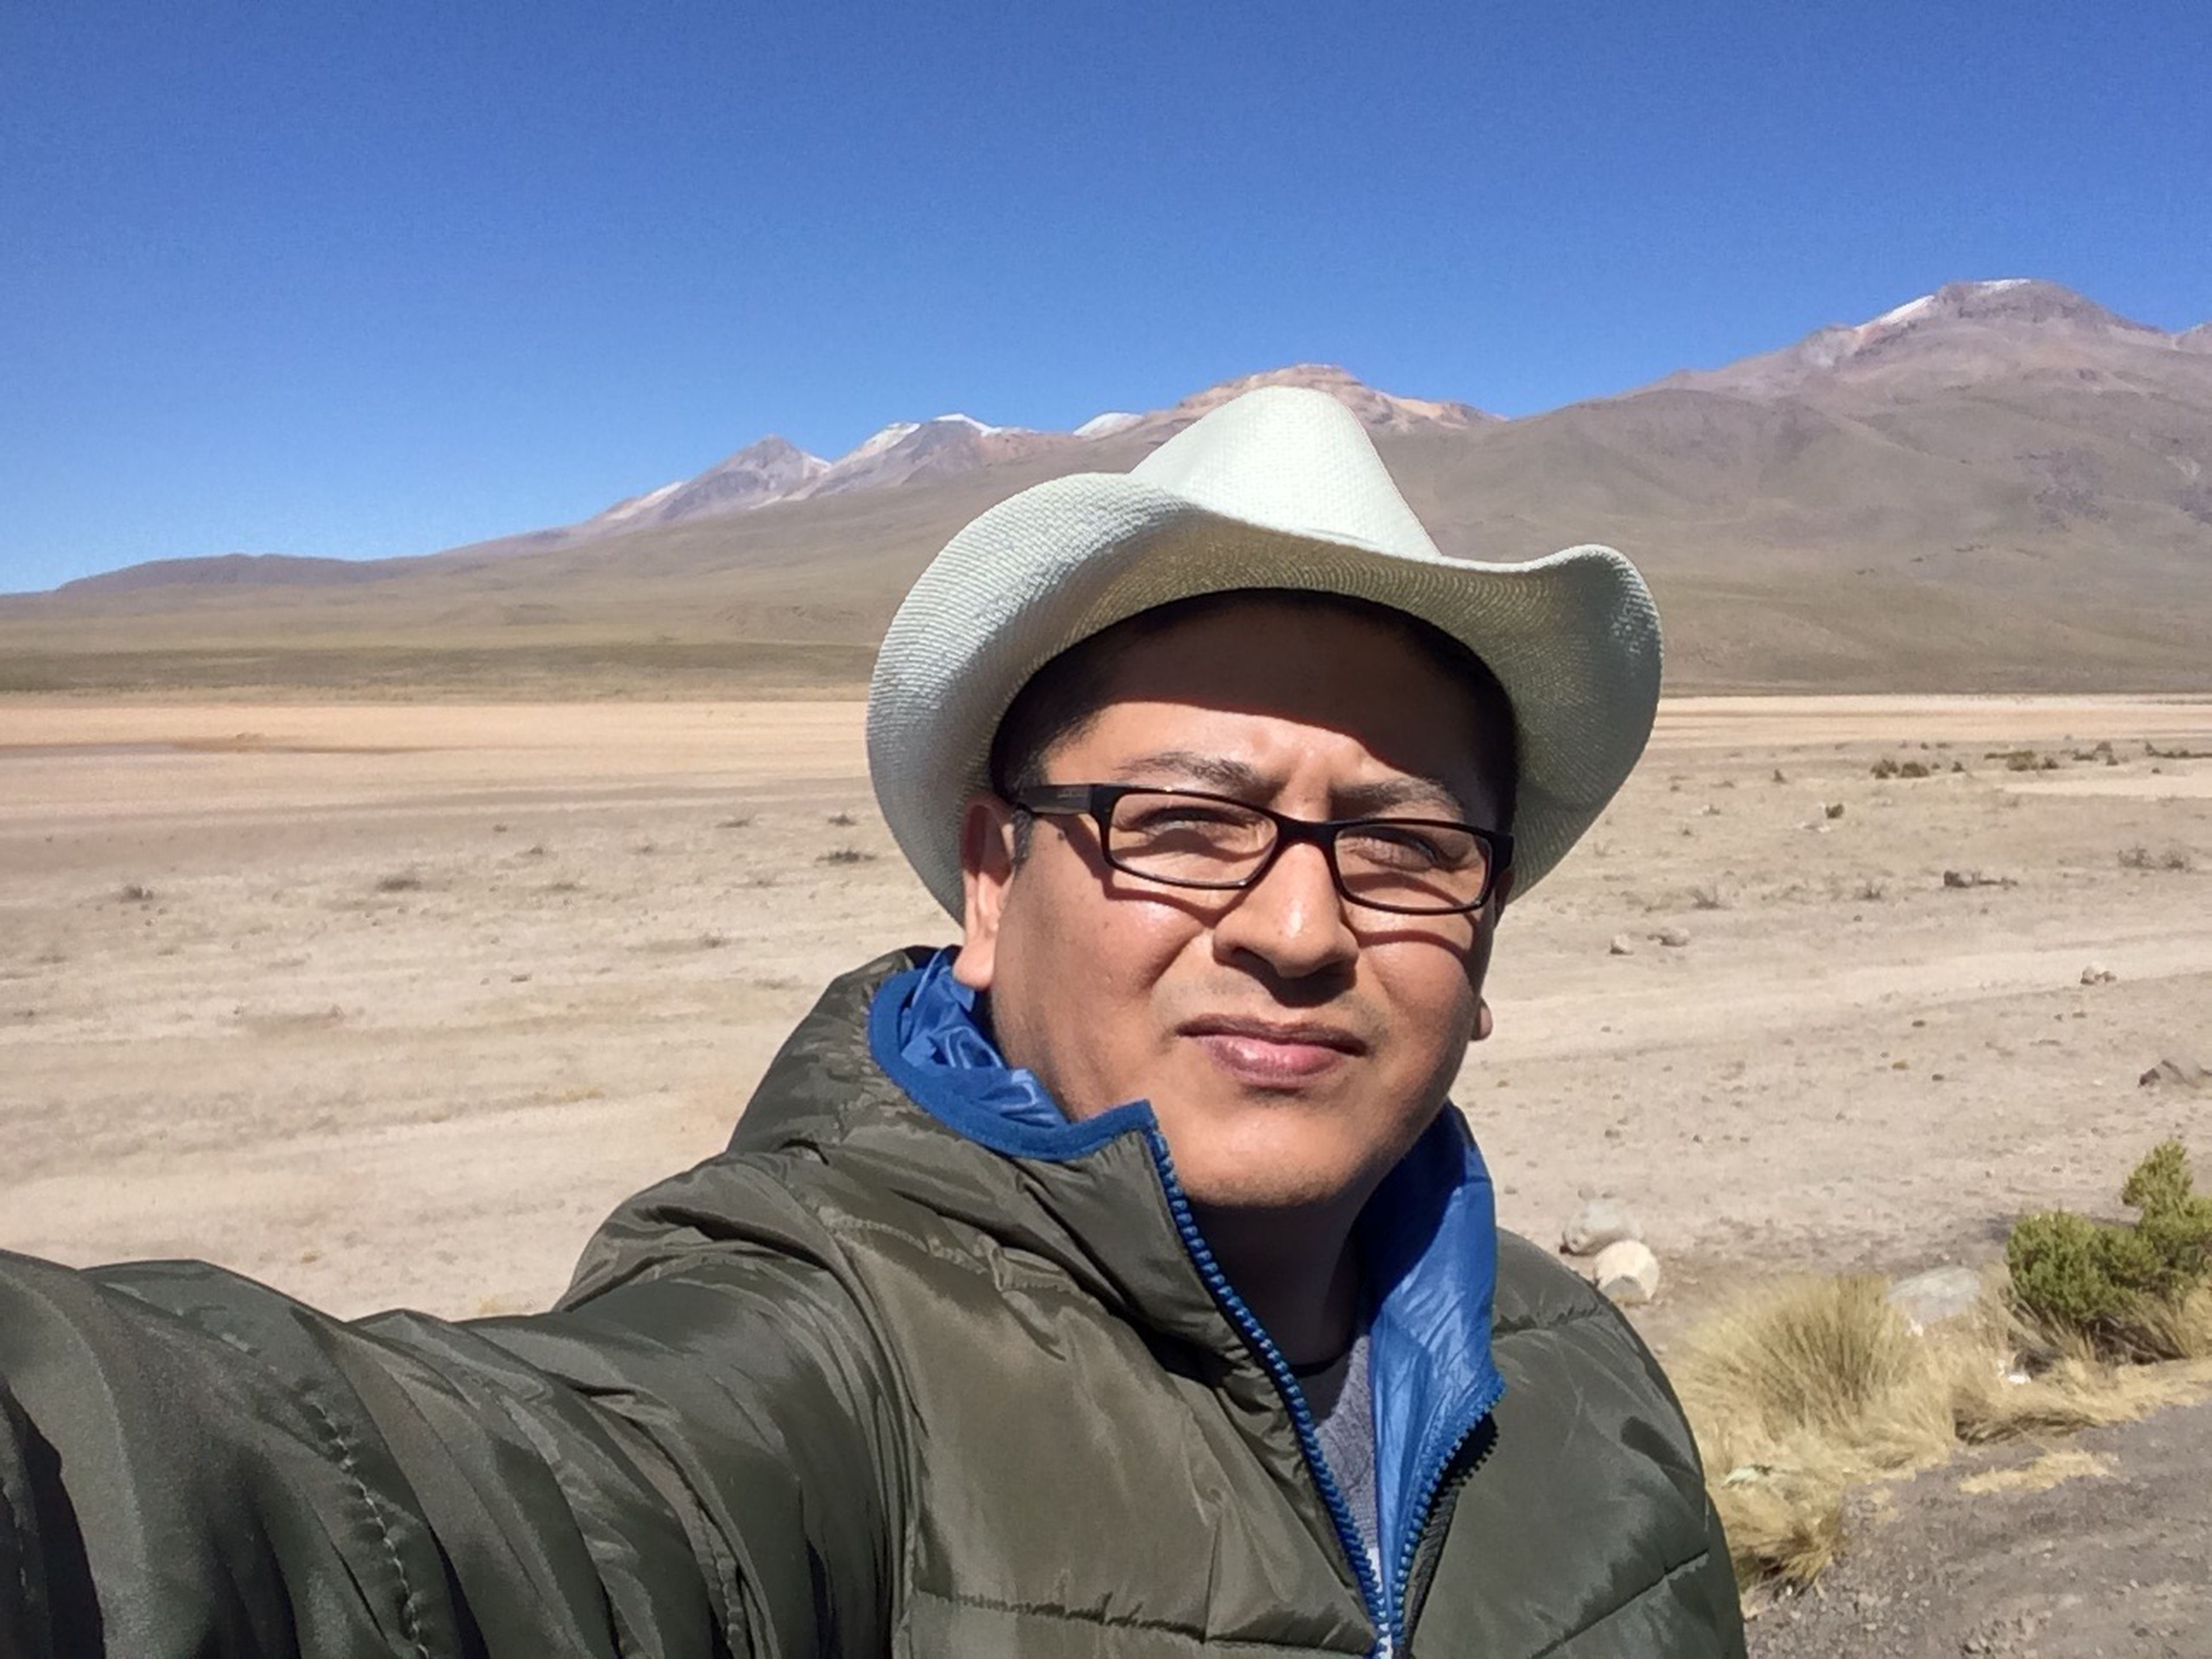 clear sky, leisure activity, headshot, lifestyles, looking at camera, mountain, exploration, adventure, casual clothing, blue, hiker, tourist, hiking, scenics, vacations, non-urban scene, person, nature, outdoors, tourism, beauty in nature, sunny, tranquil scene